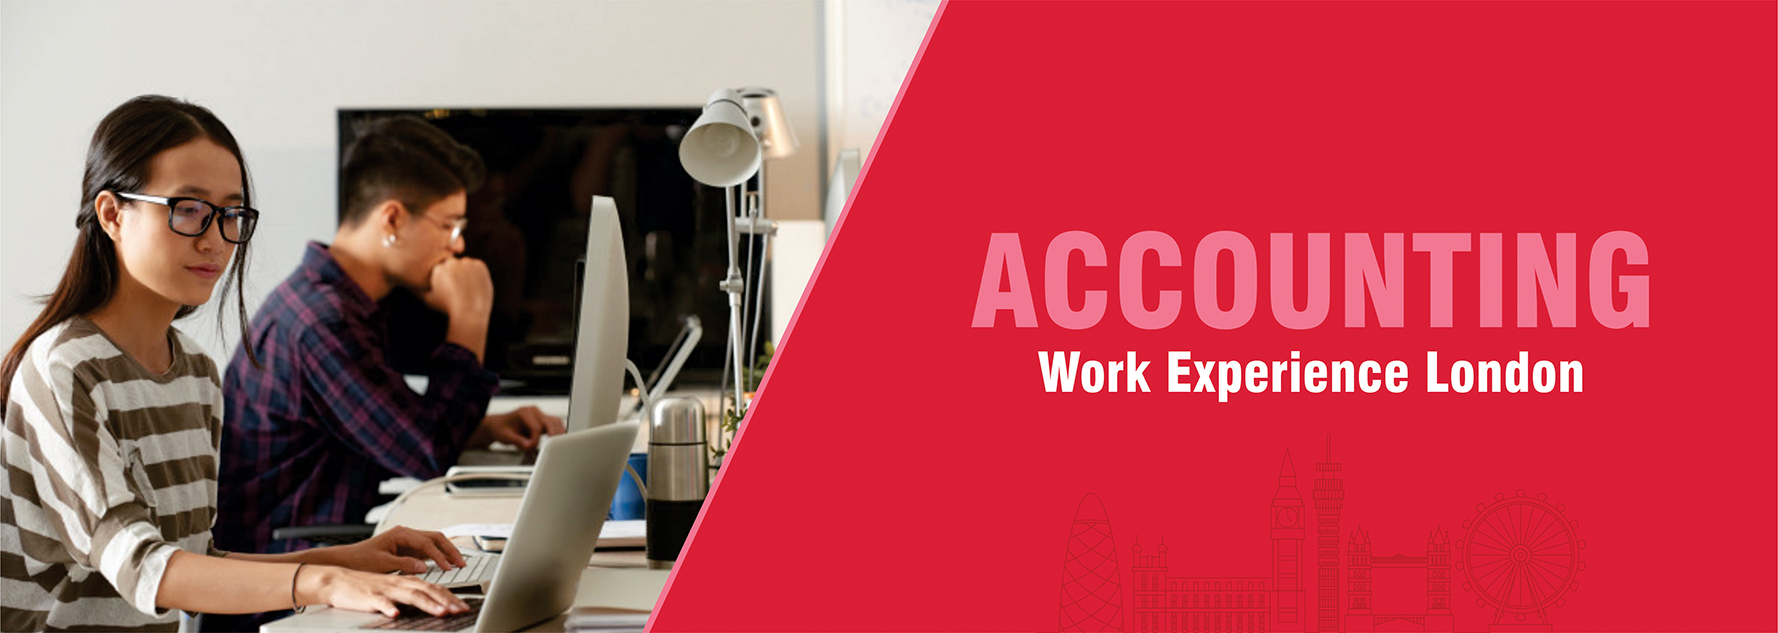 accounting-work-experience-london